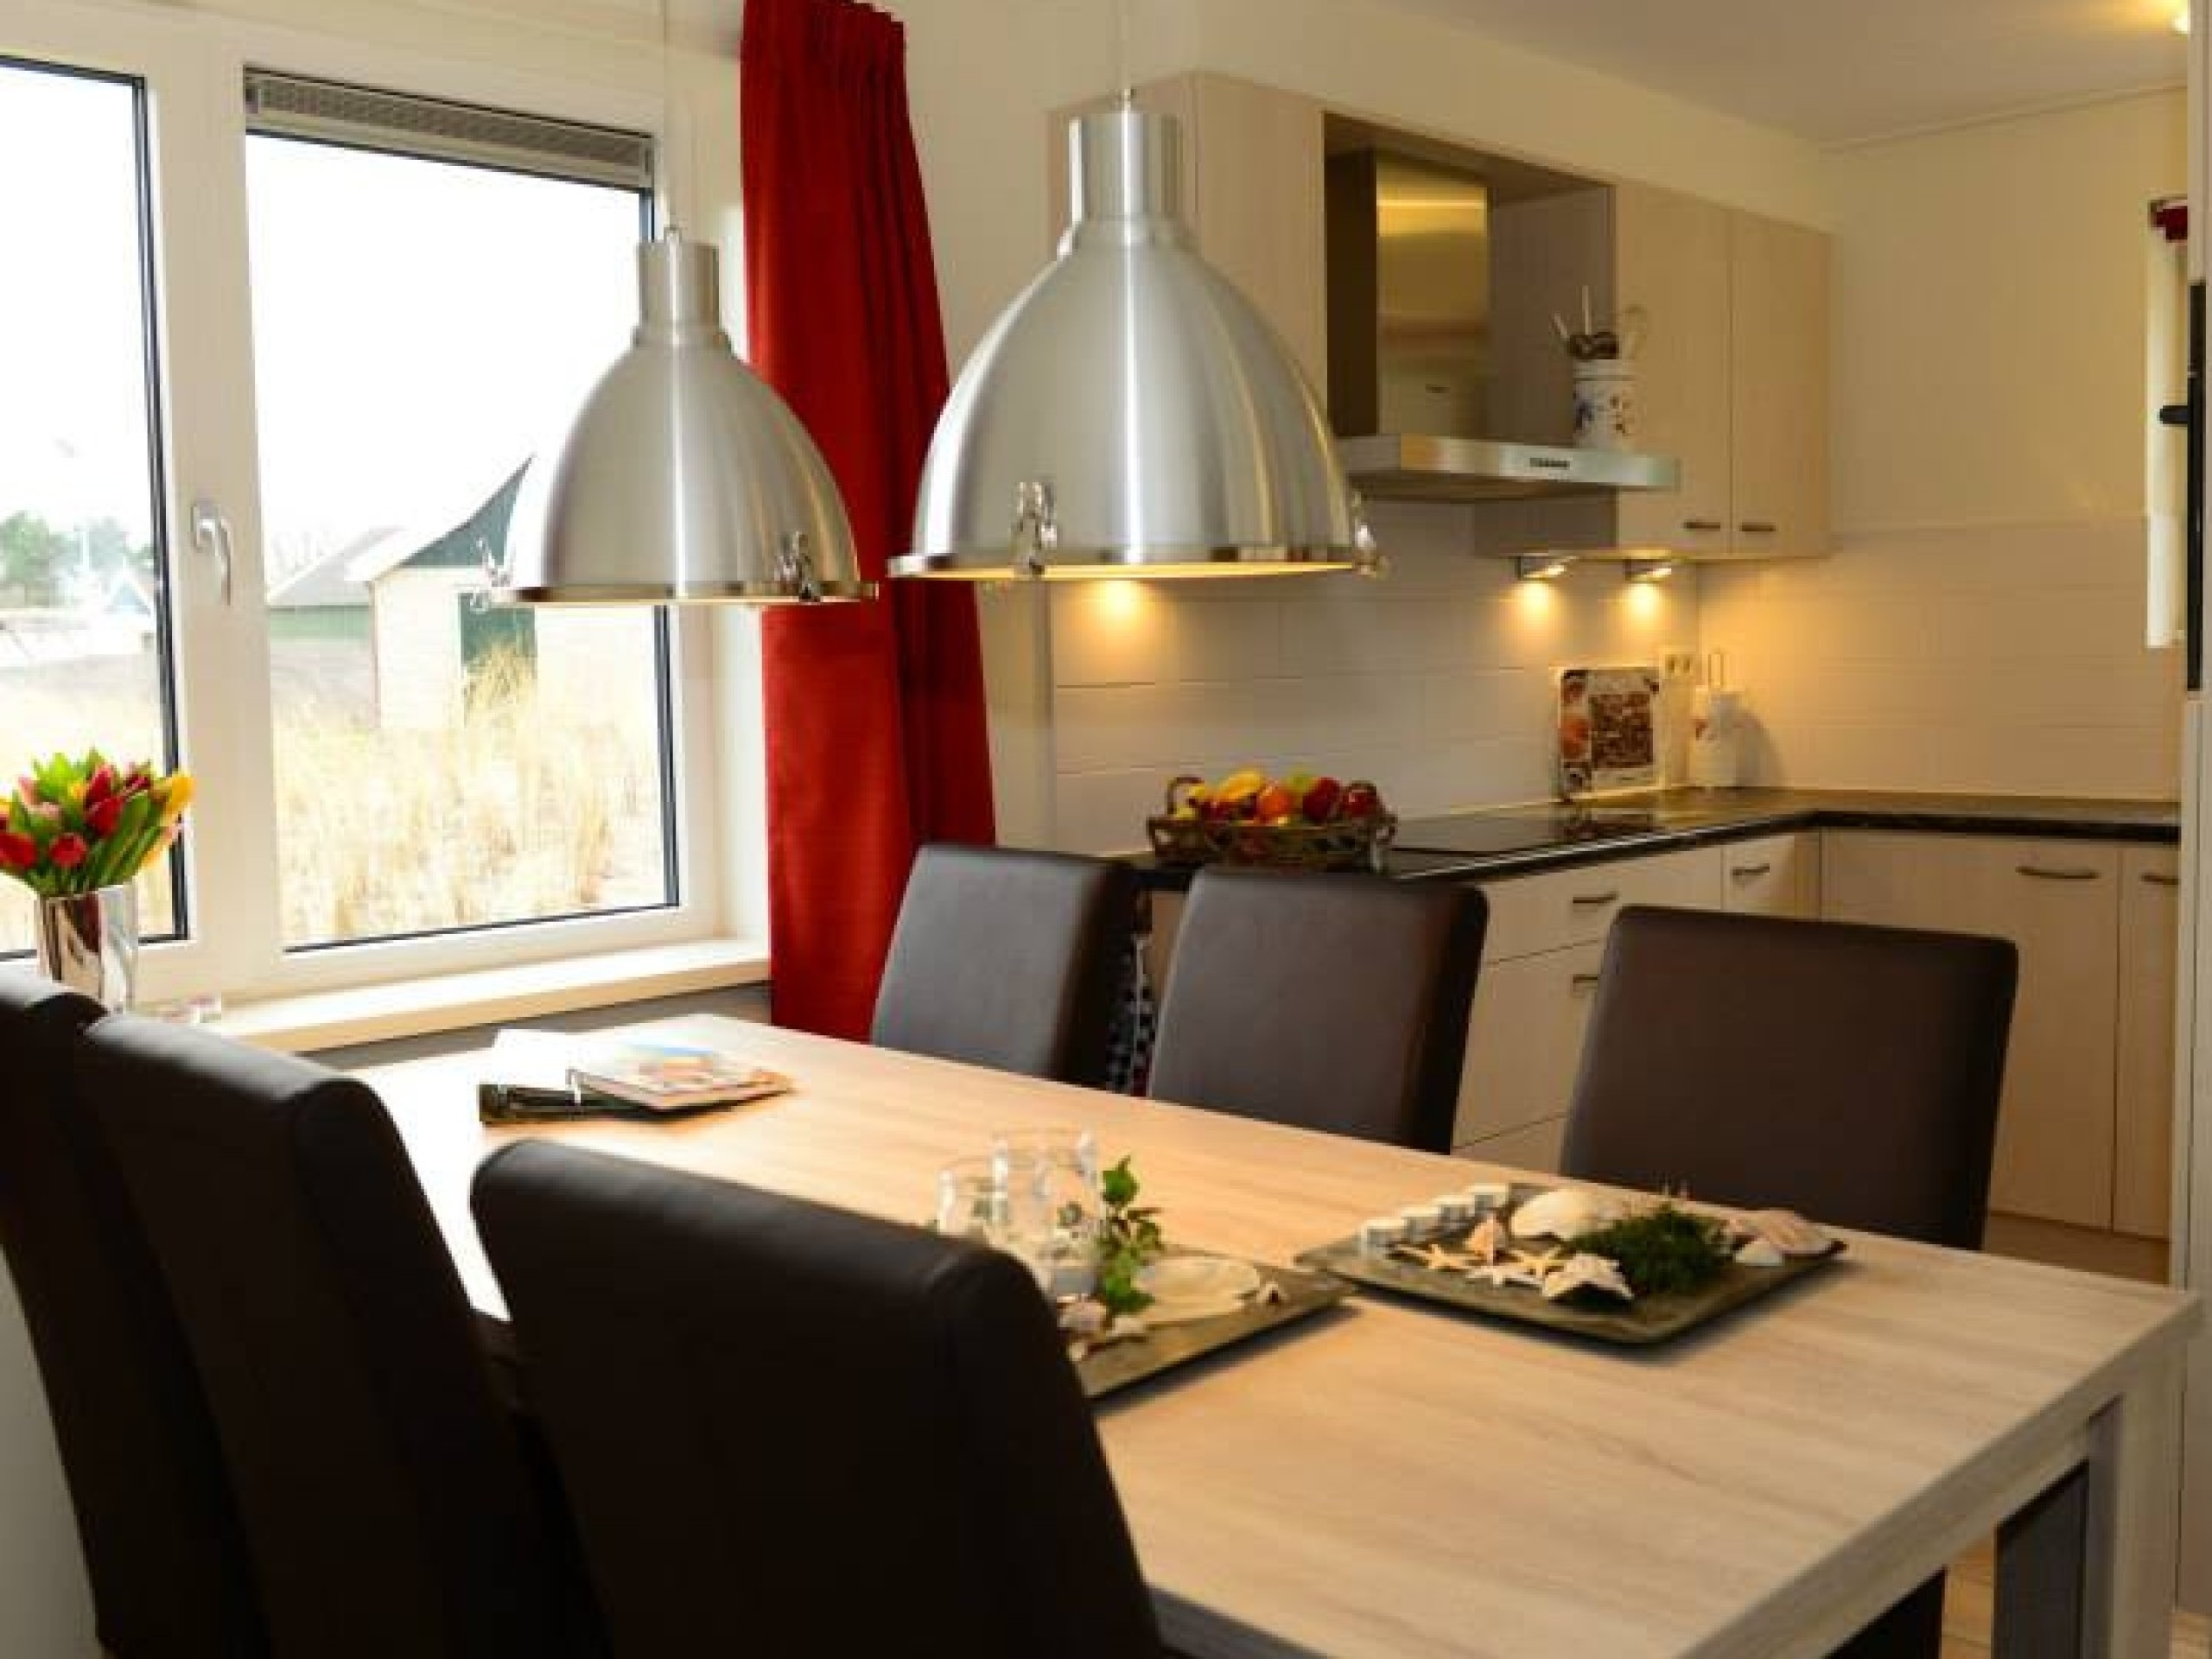 Relax in style at this luxury detached holiday home near De Koog